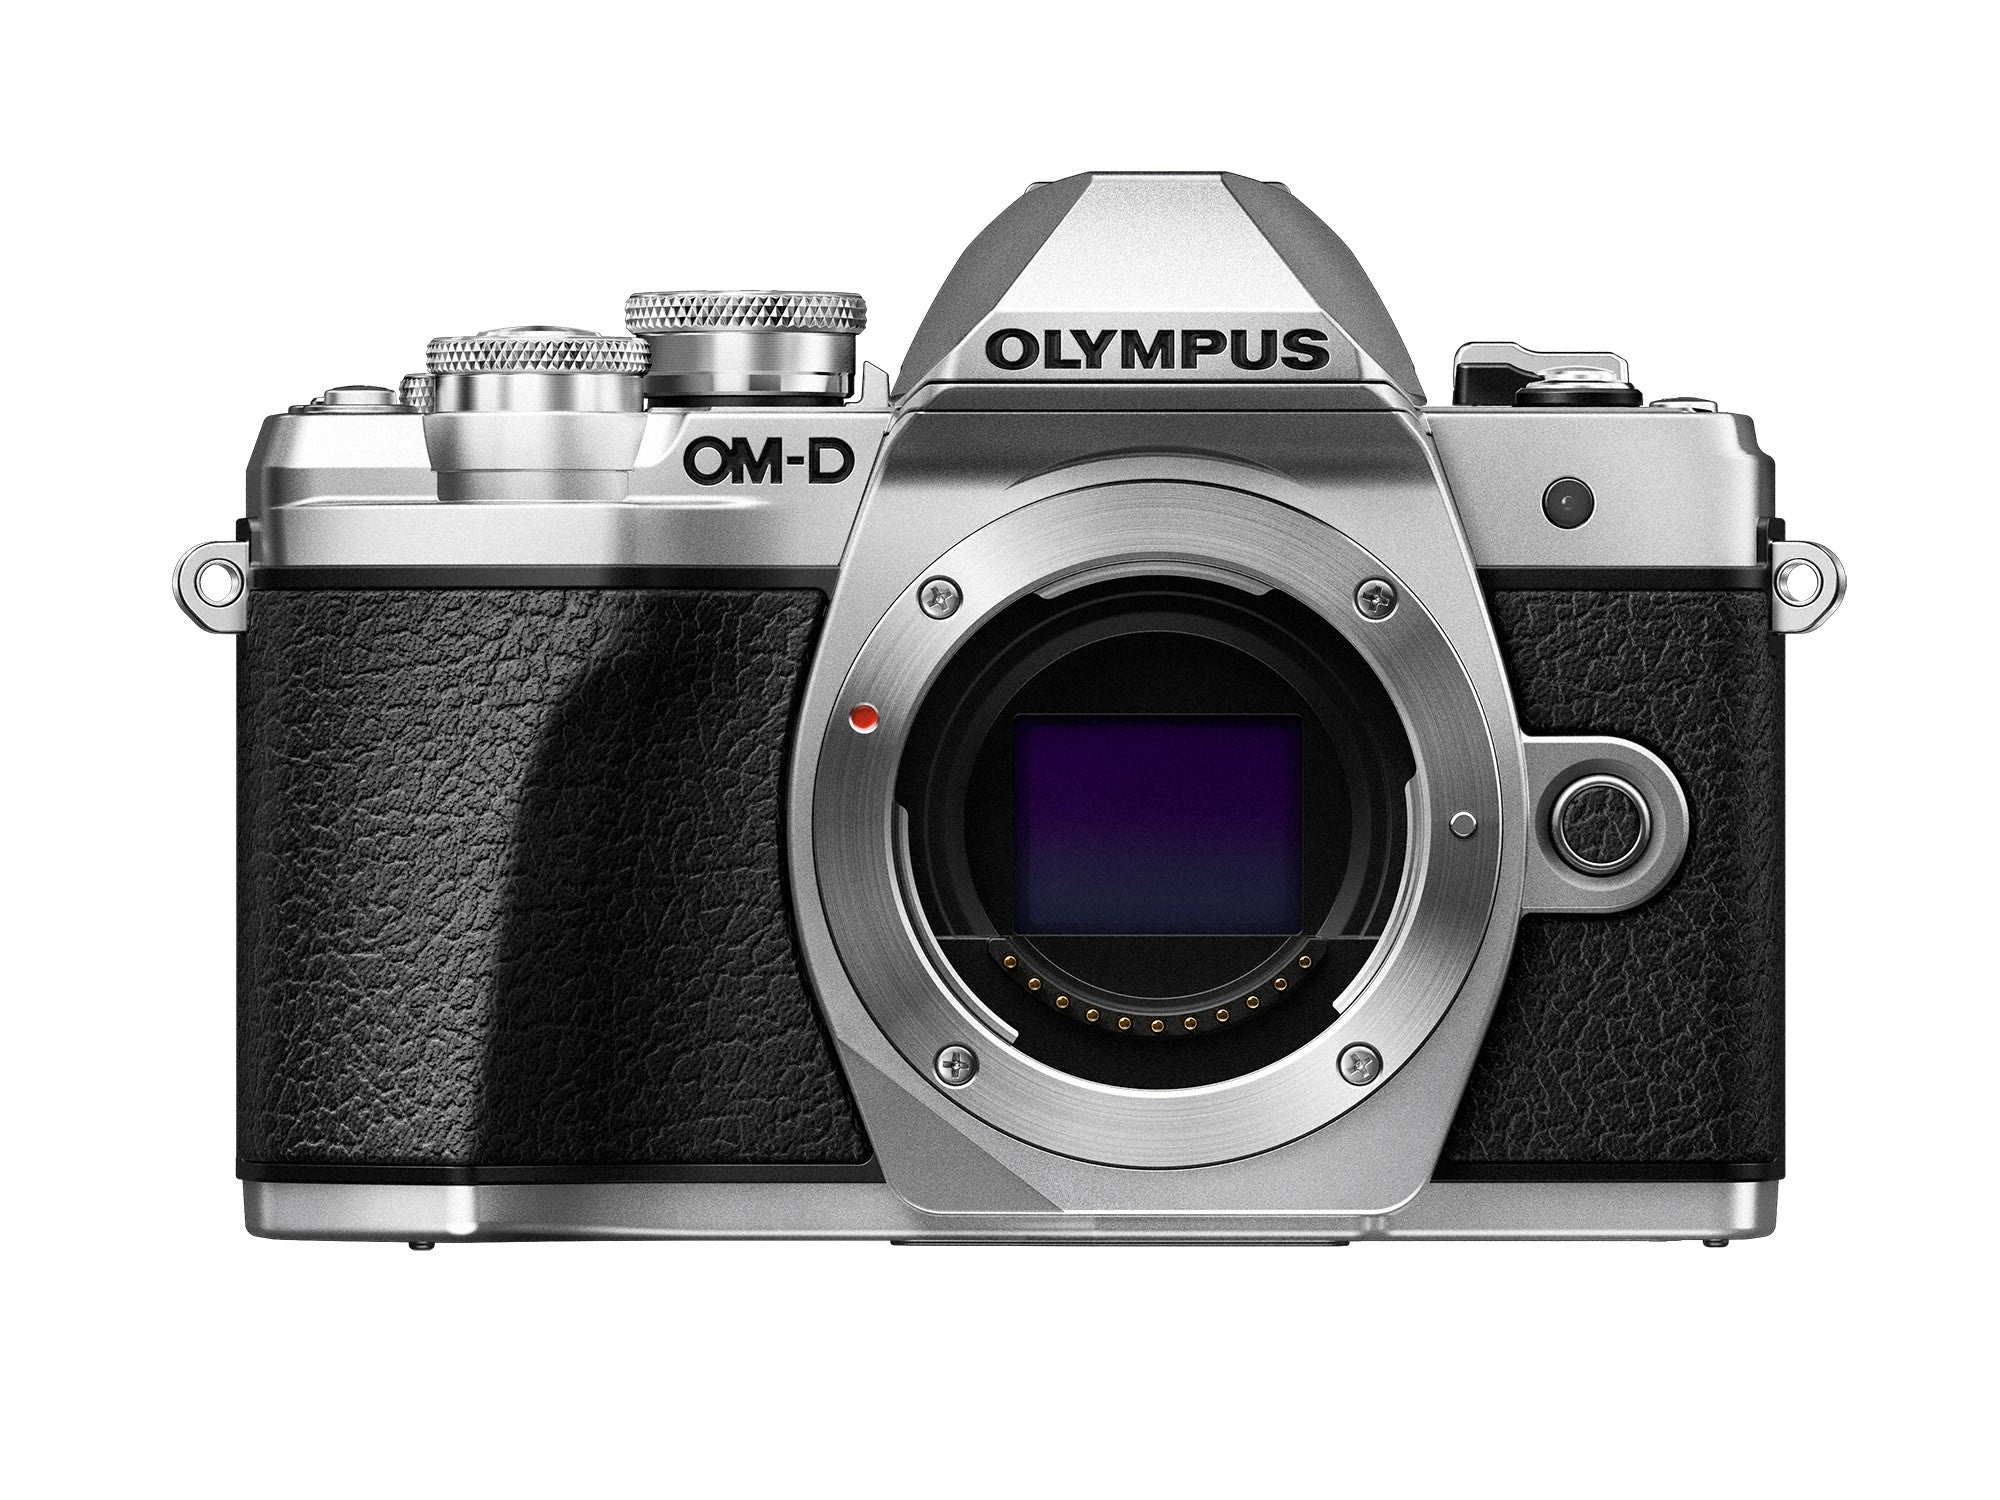 Olympus OM-D E-M10 Mark III Mirrorless Camera - Silver